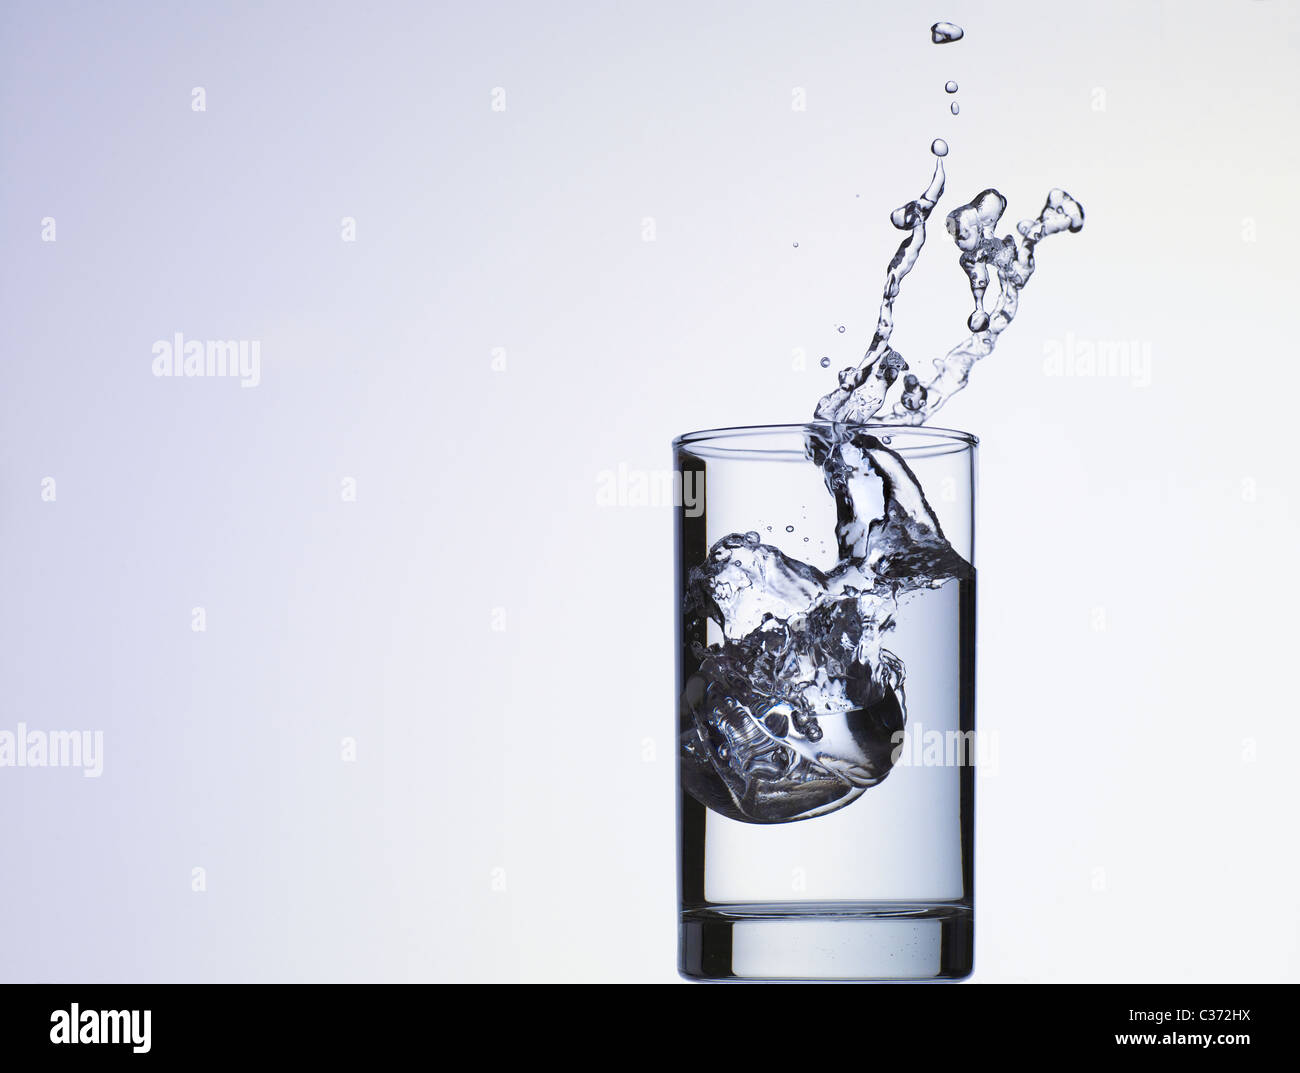 Cube of ice dropping into glass of water - Stock Image